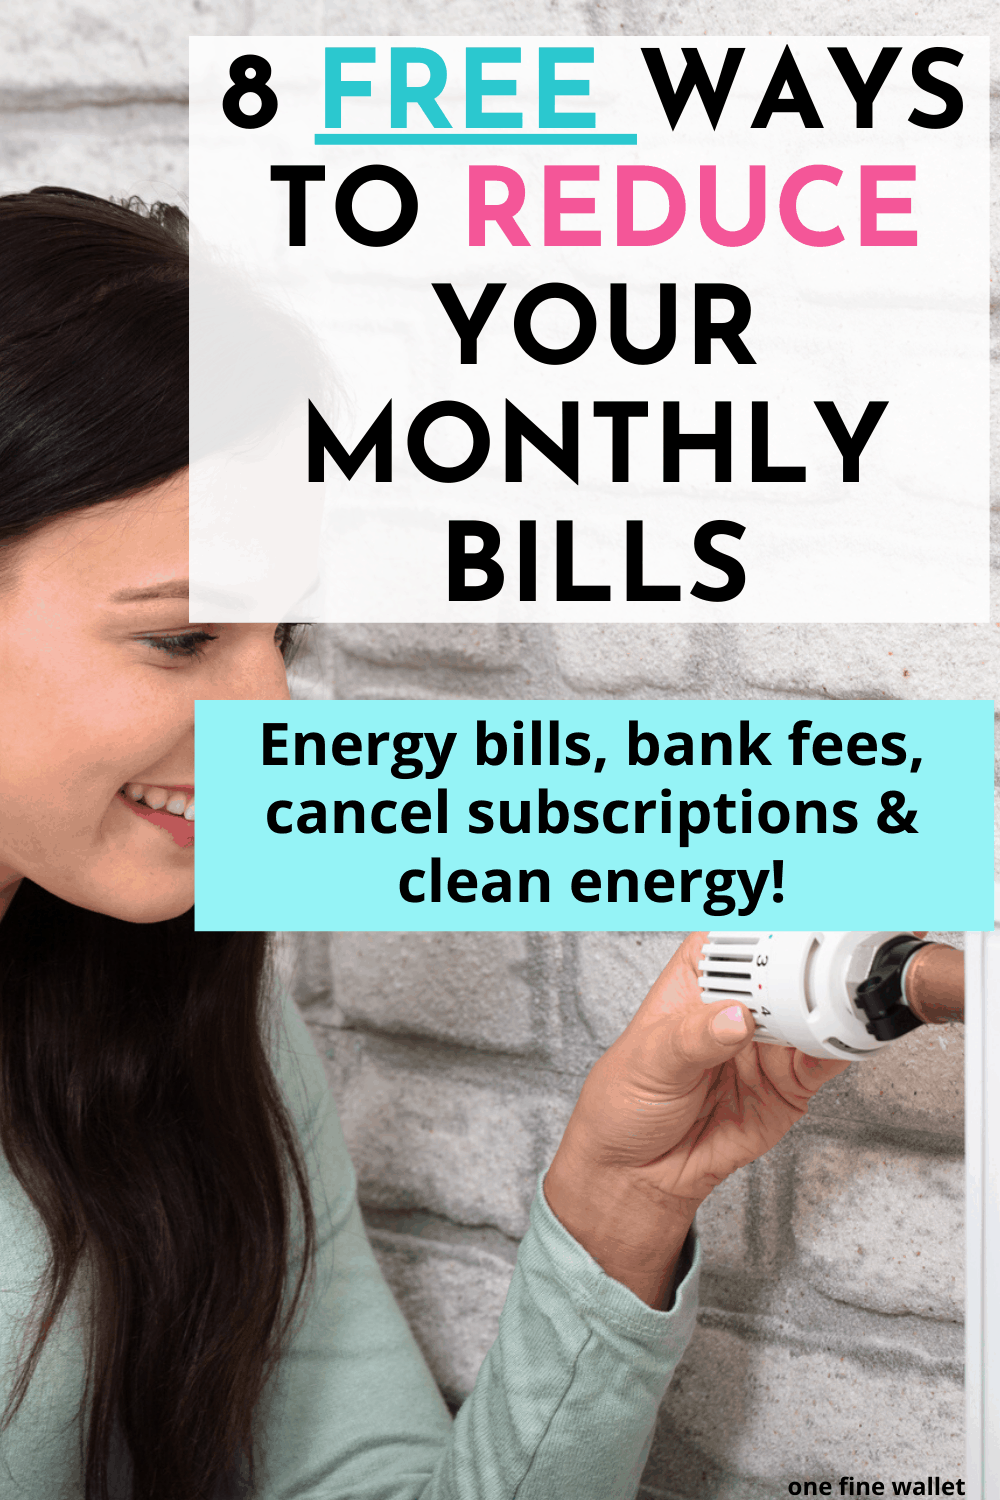 Smart frugal tips to save money on monthly electricity bills. Money saving tips and low waste living ideas inside!